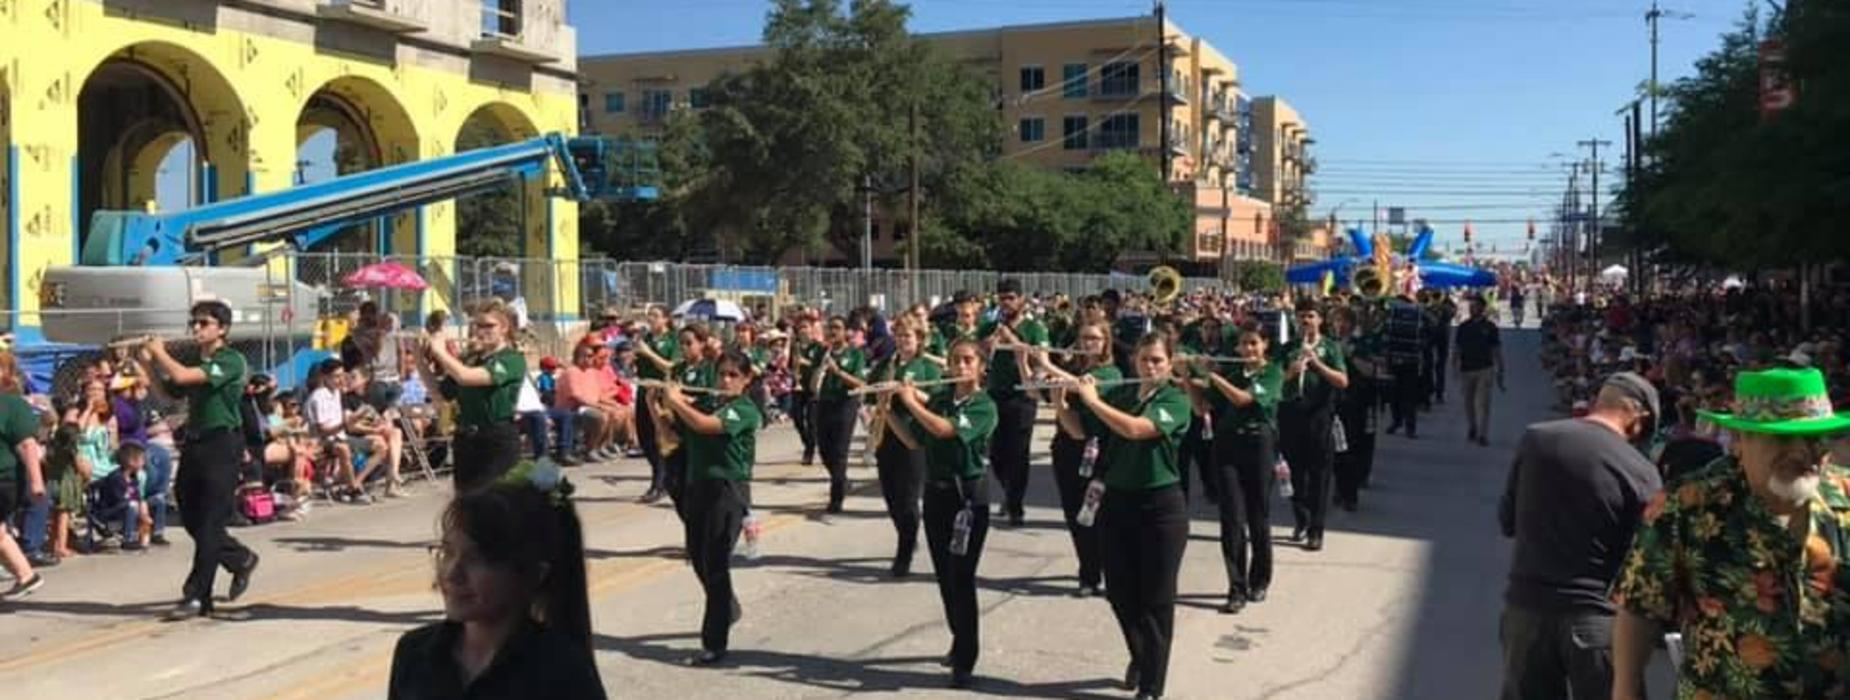 Our Taylor High School Band & Color Guard marched in the Battle of Flowers Parade in San Antonio.  The parade is the oldest in the Fiesta celebration, having been presented since 1891.  This year, there were 550,000 people in attendance.